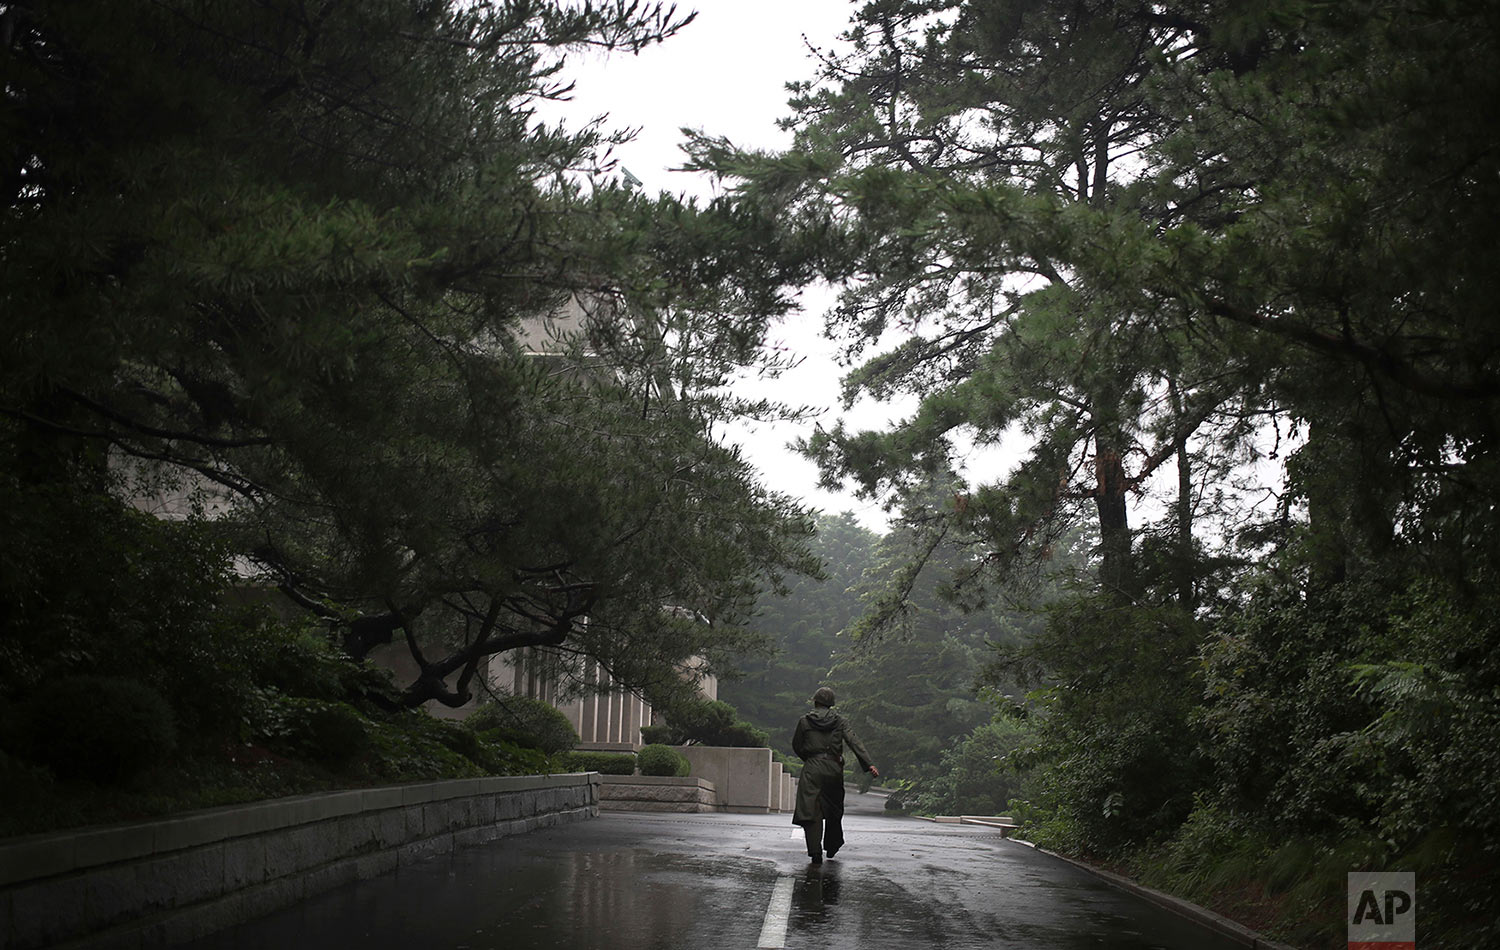 A soldier walks toward the truce village of Panmunjom on the North Korean side of the Demilitarized Zone that divides the two Koreas on July 22, 2013. (AP Photo/Wong Maye-E)